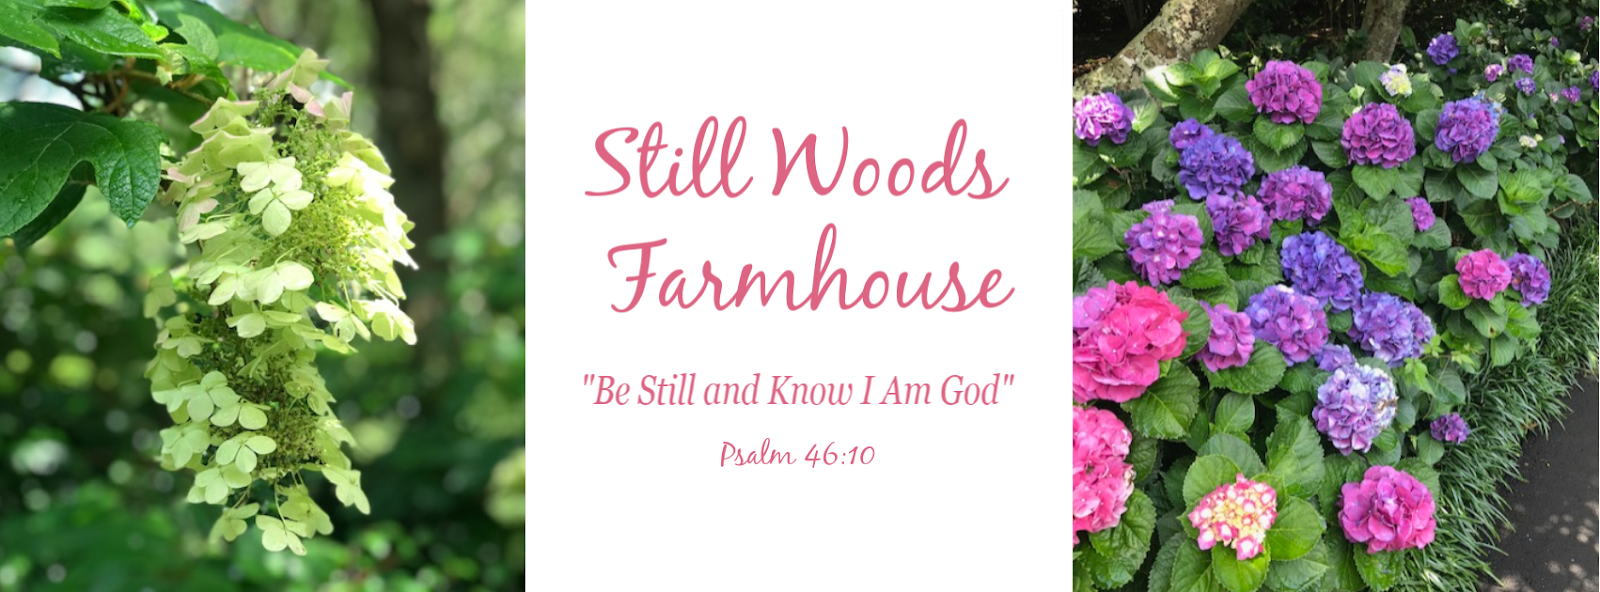 Still Woods Farmhouse